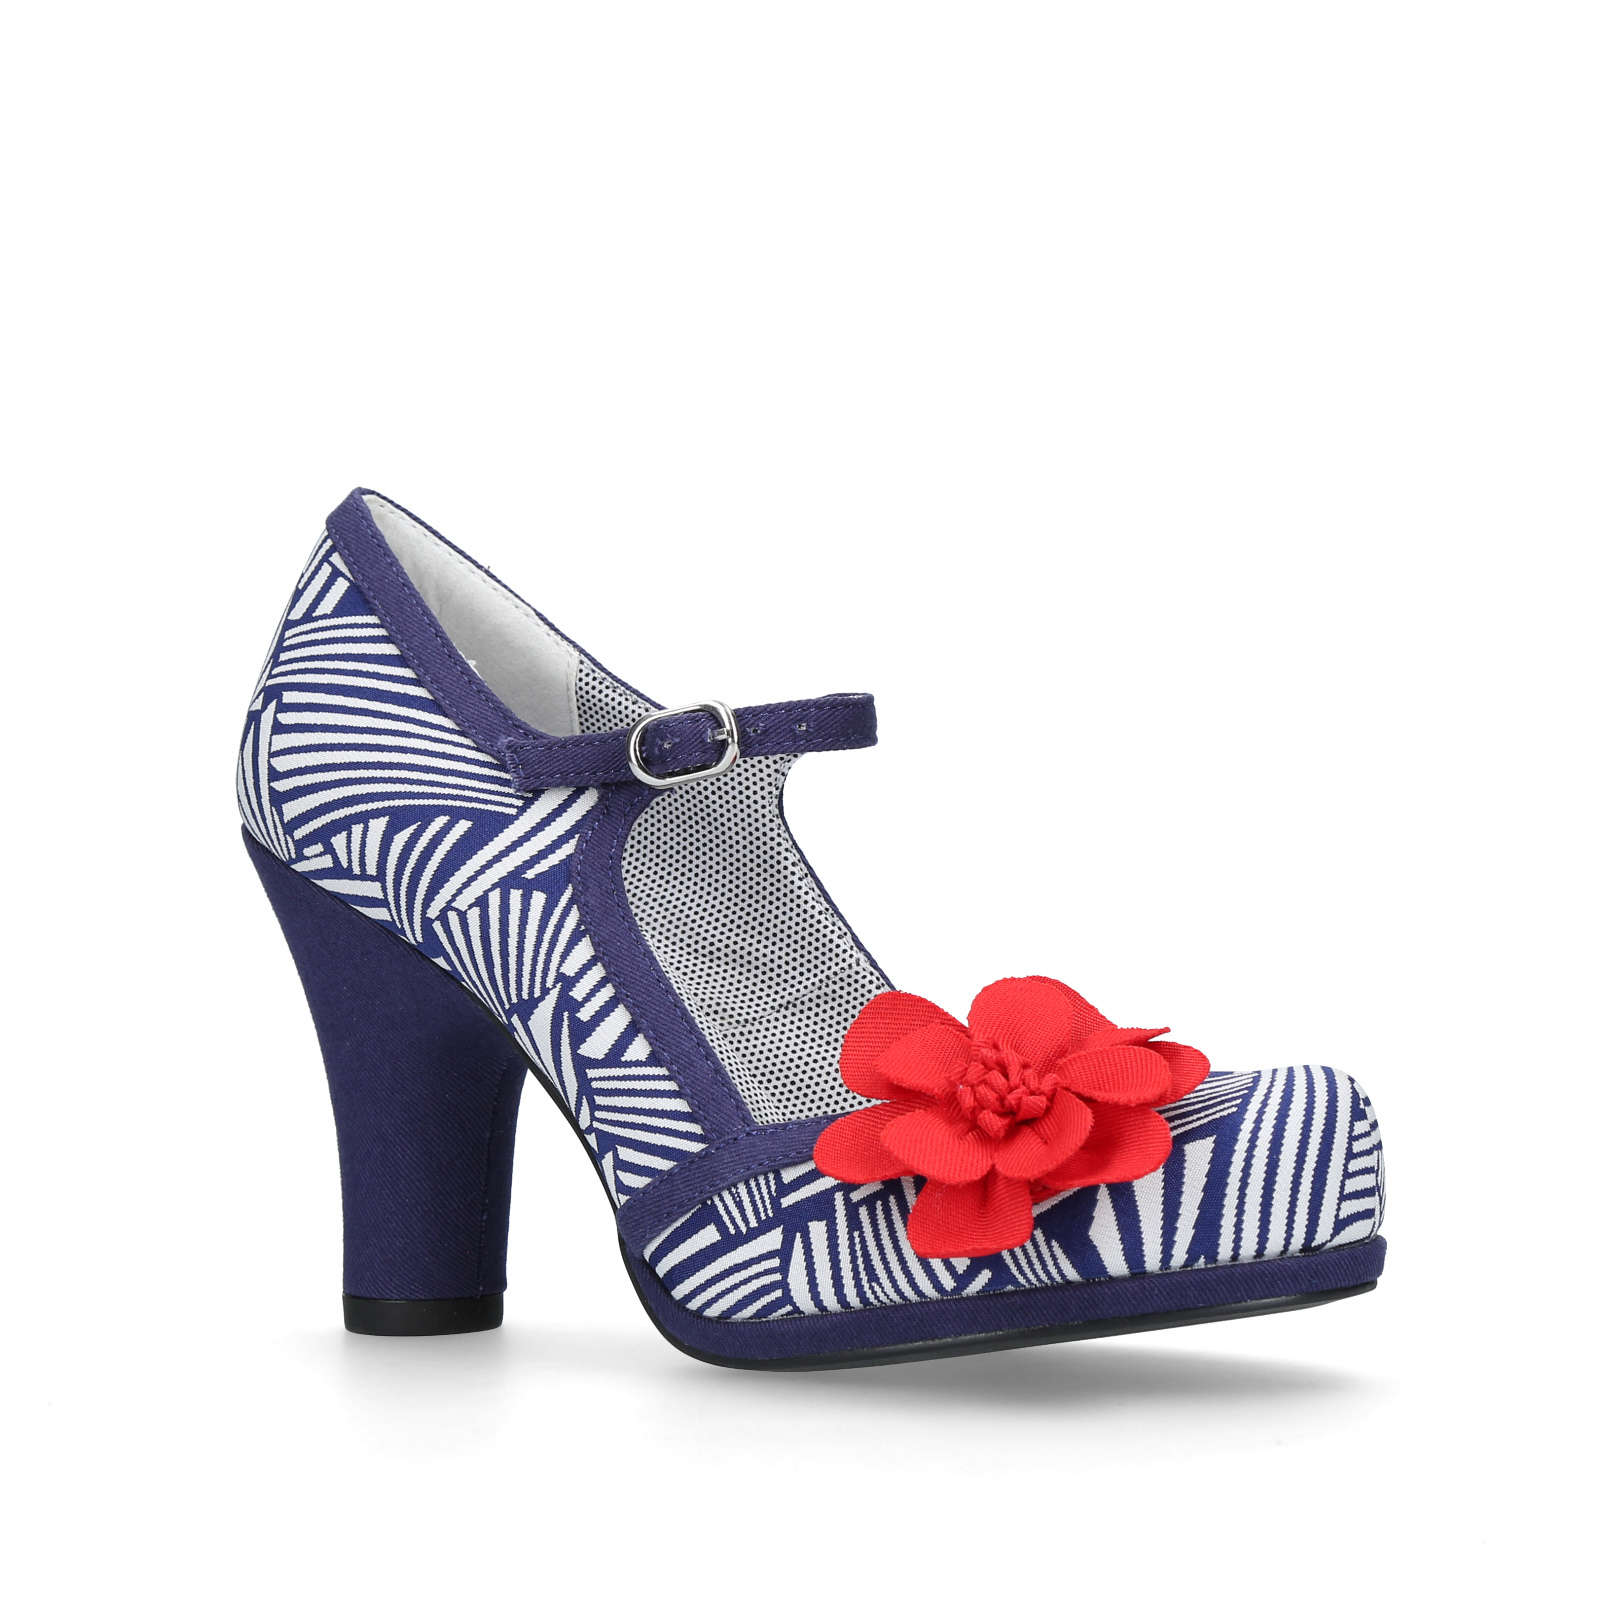 TANYA Ruby Shoo Tanya White   Navy Fabric   Other Occasion Heels Block Heel  by RUBY SHOO e54a82b607